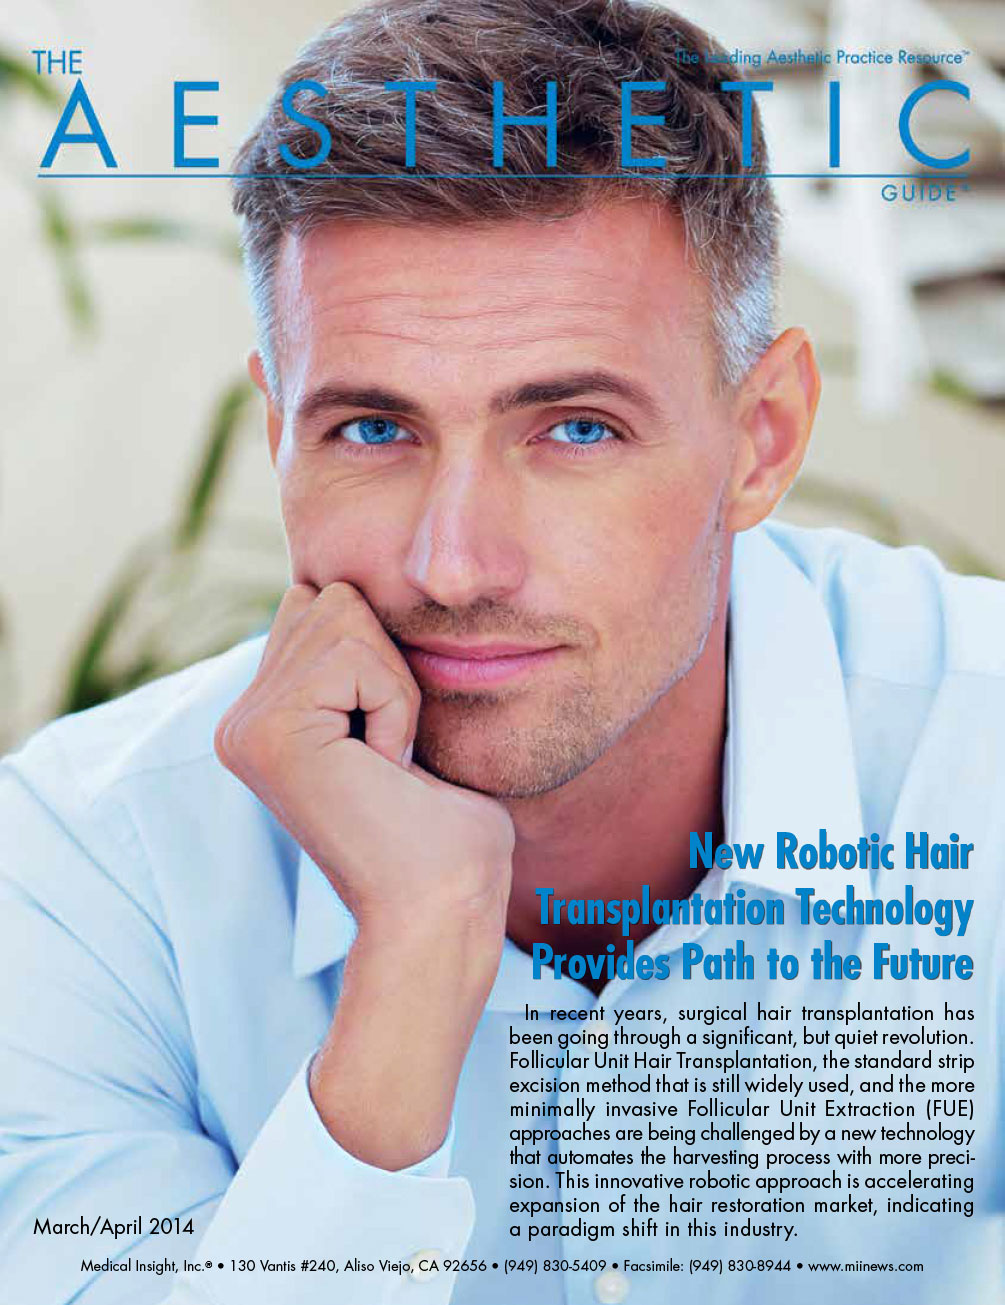 ARTAS Hair Studio and ARTAS Robotic System Signal a Paradigm Shift in Hair Restoration TAG March April 2014 1